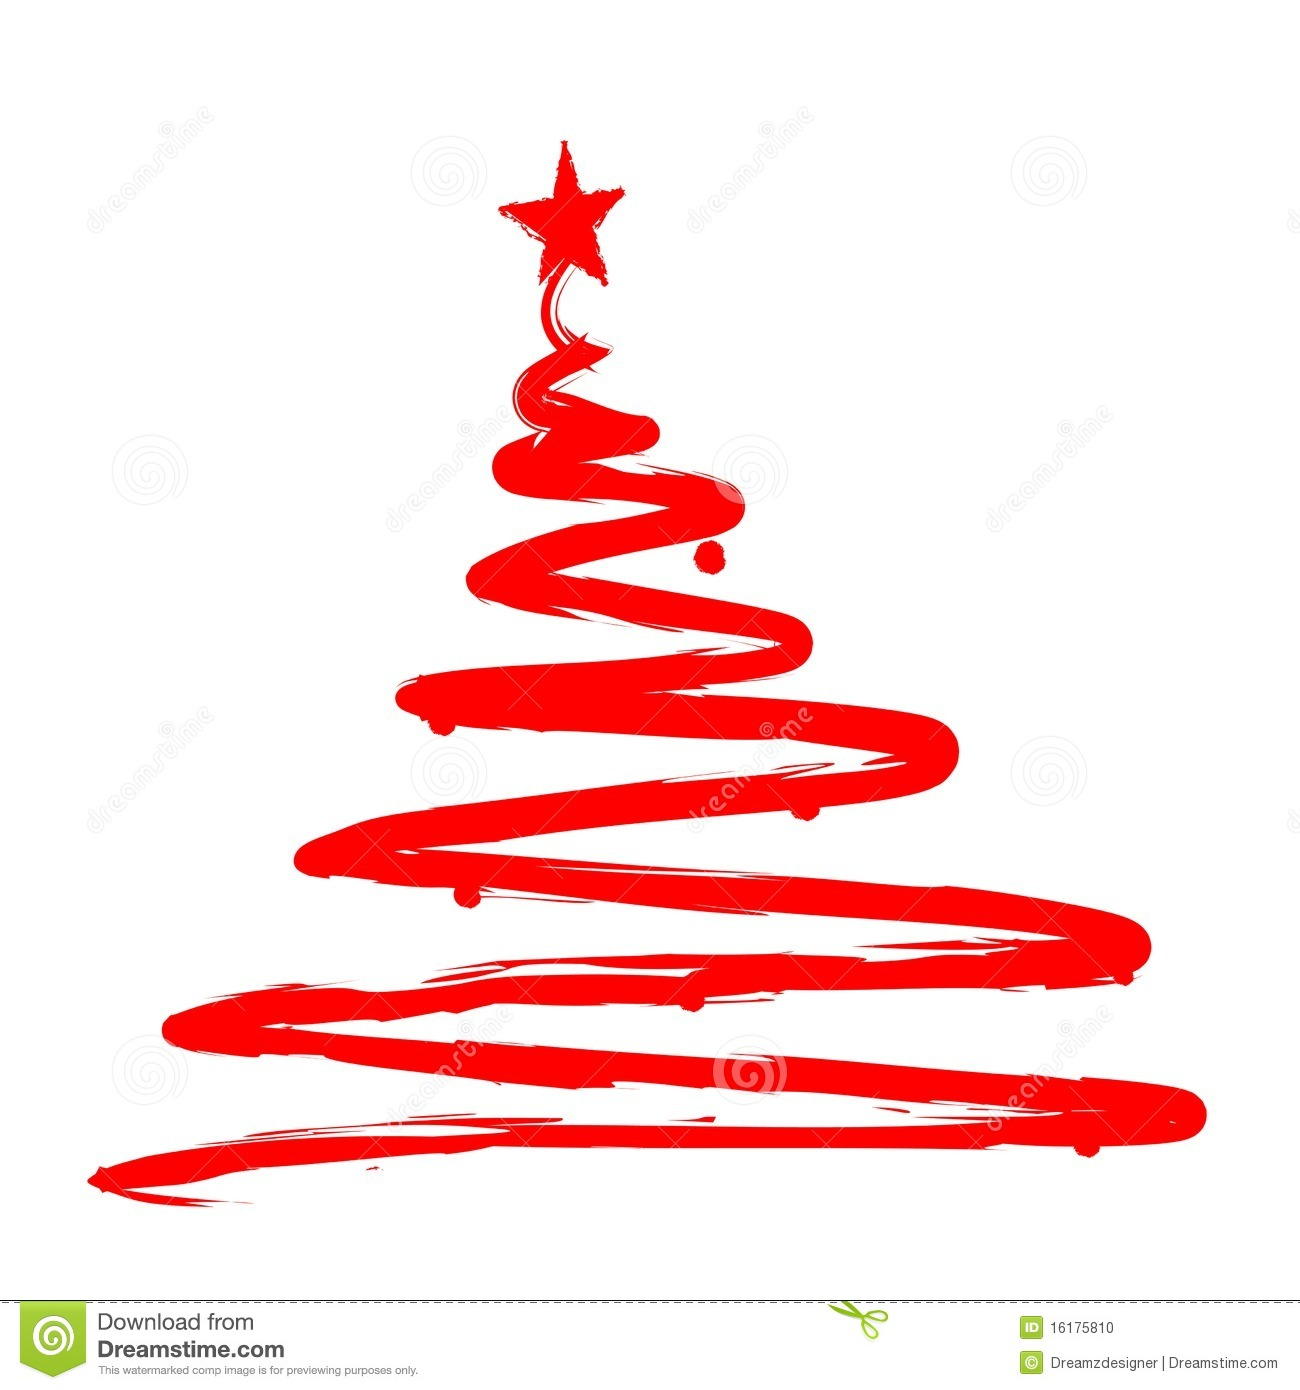 ribbon christmas tree royalty free stock image - image: 17087786